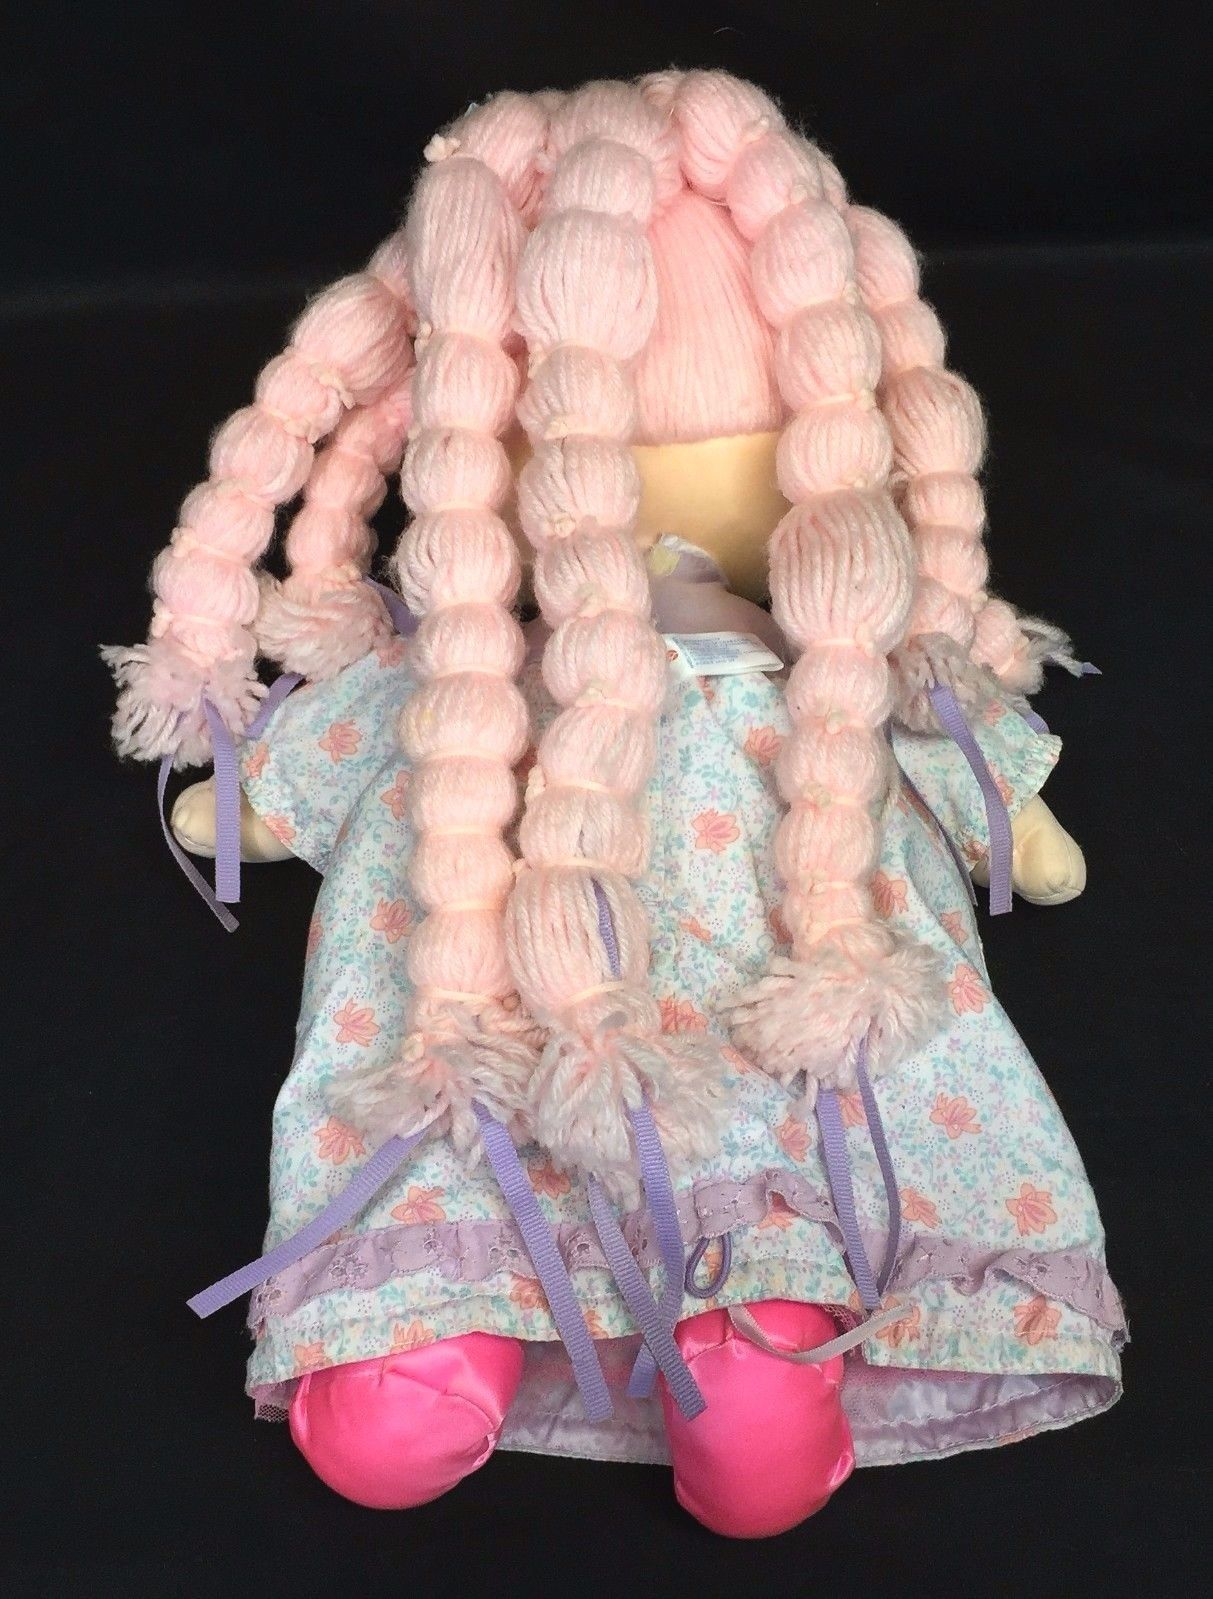 Amtoy tuggabows doll dress pink yarn hair and 50 similar items amtoy tuggabows doll dress pink yarn hair shoes vintage american greetings 1986 m4hsunfo